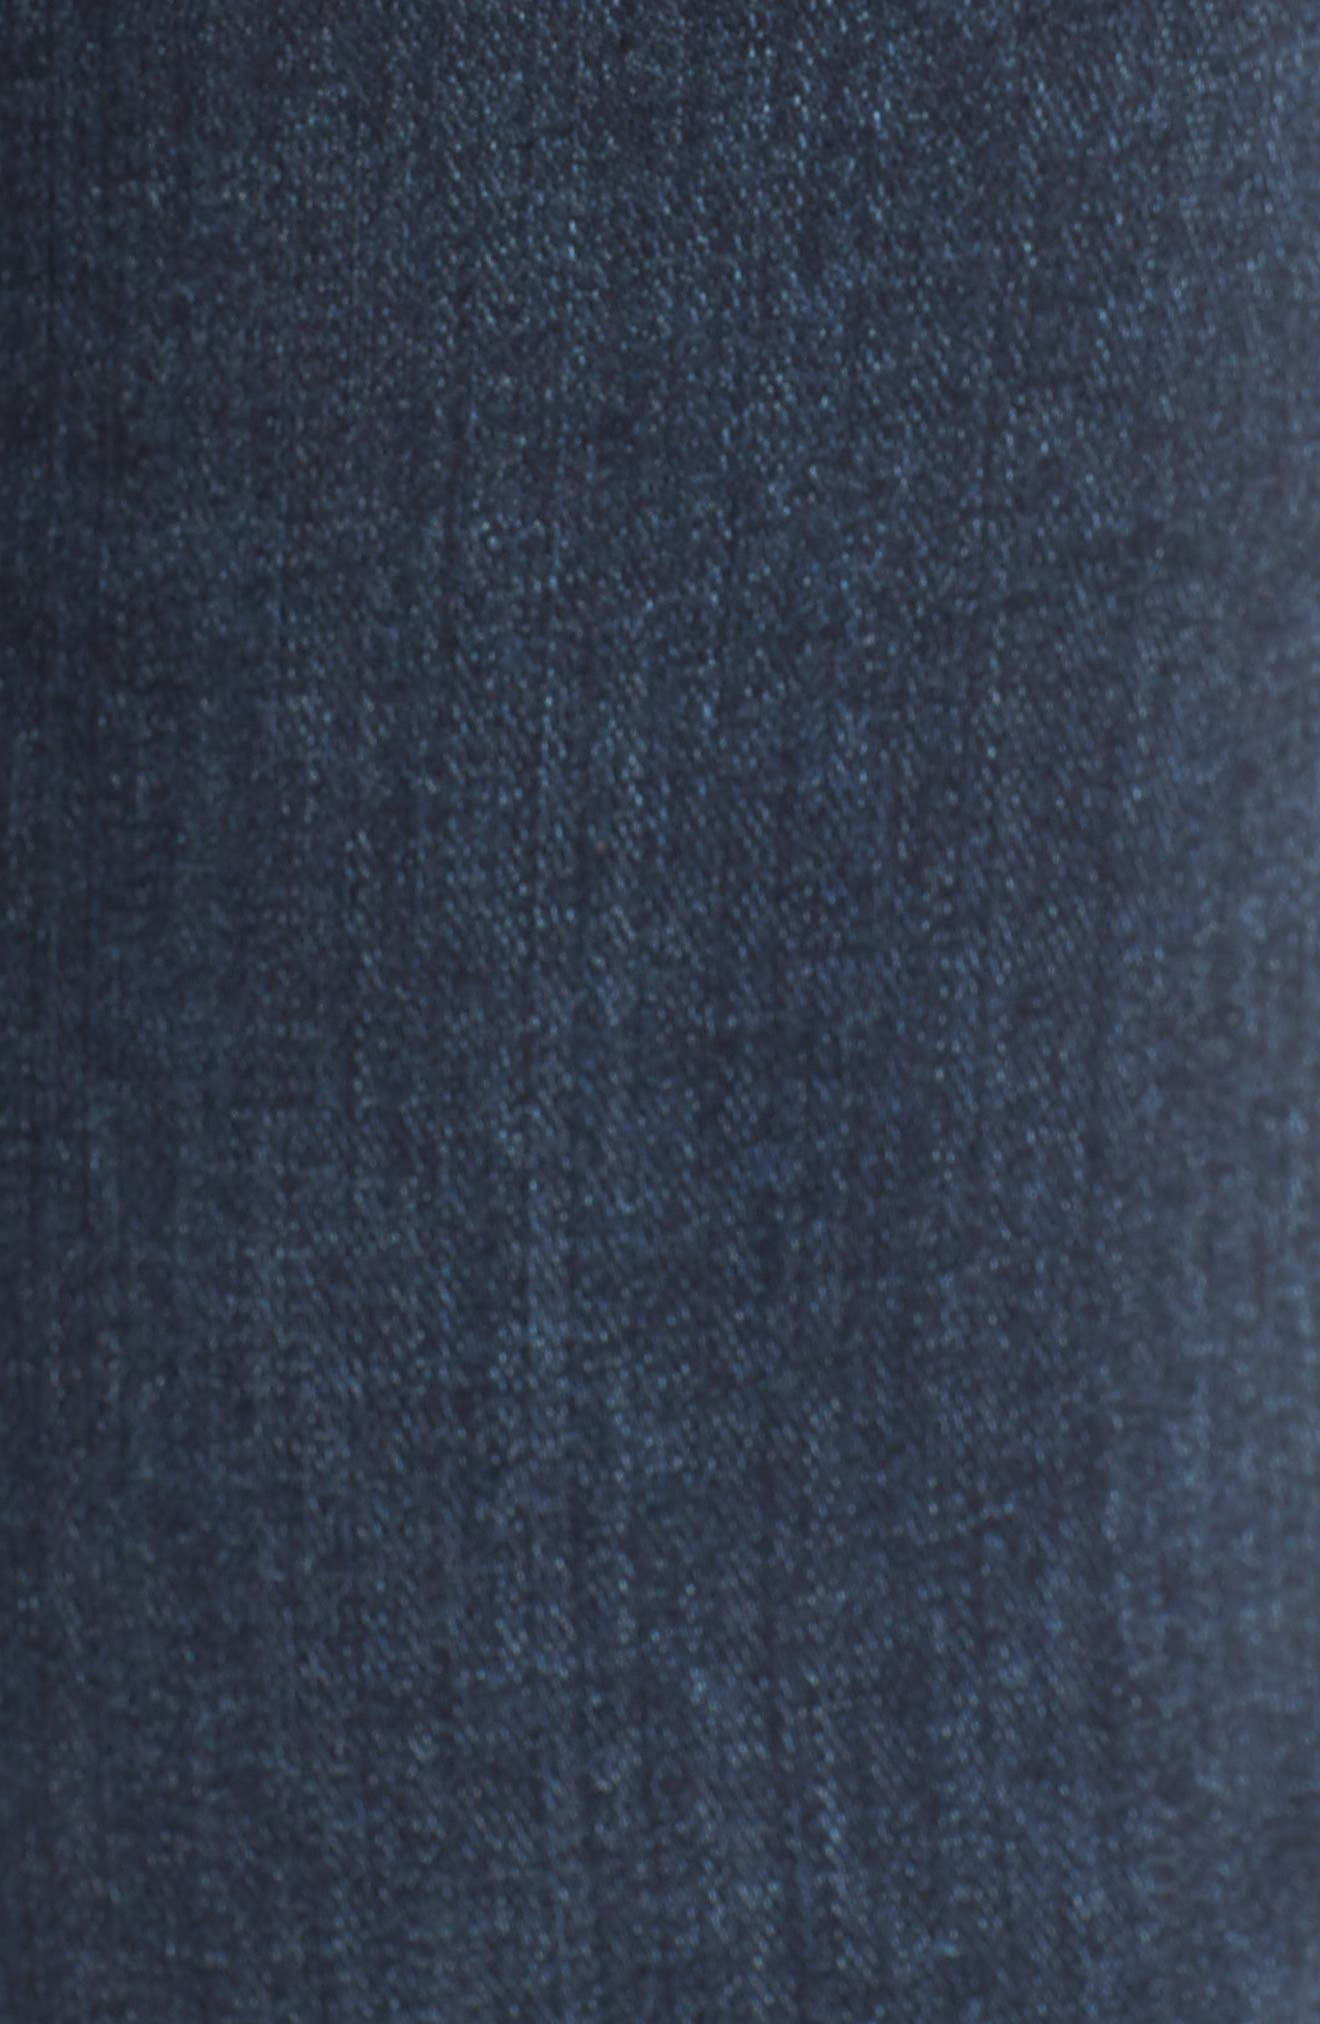 'Beth' Baby Bootcut Jeans,                             Alternate thumbnail 5, color,                             422